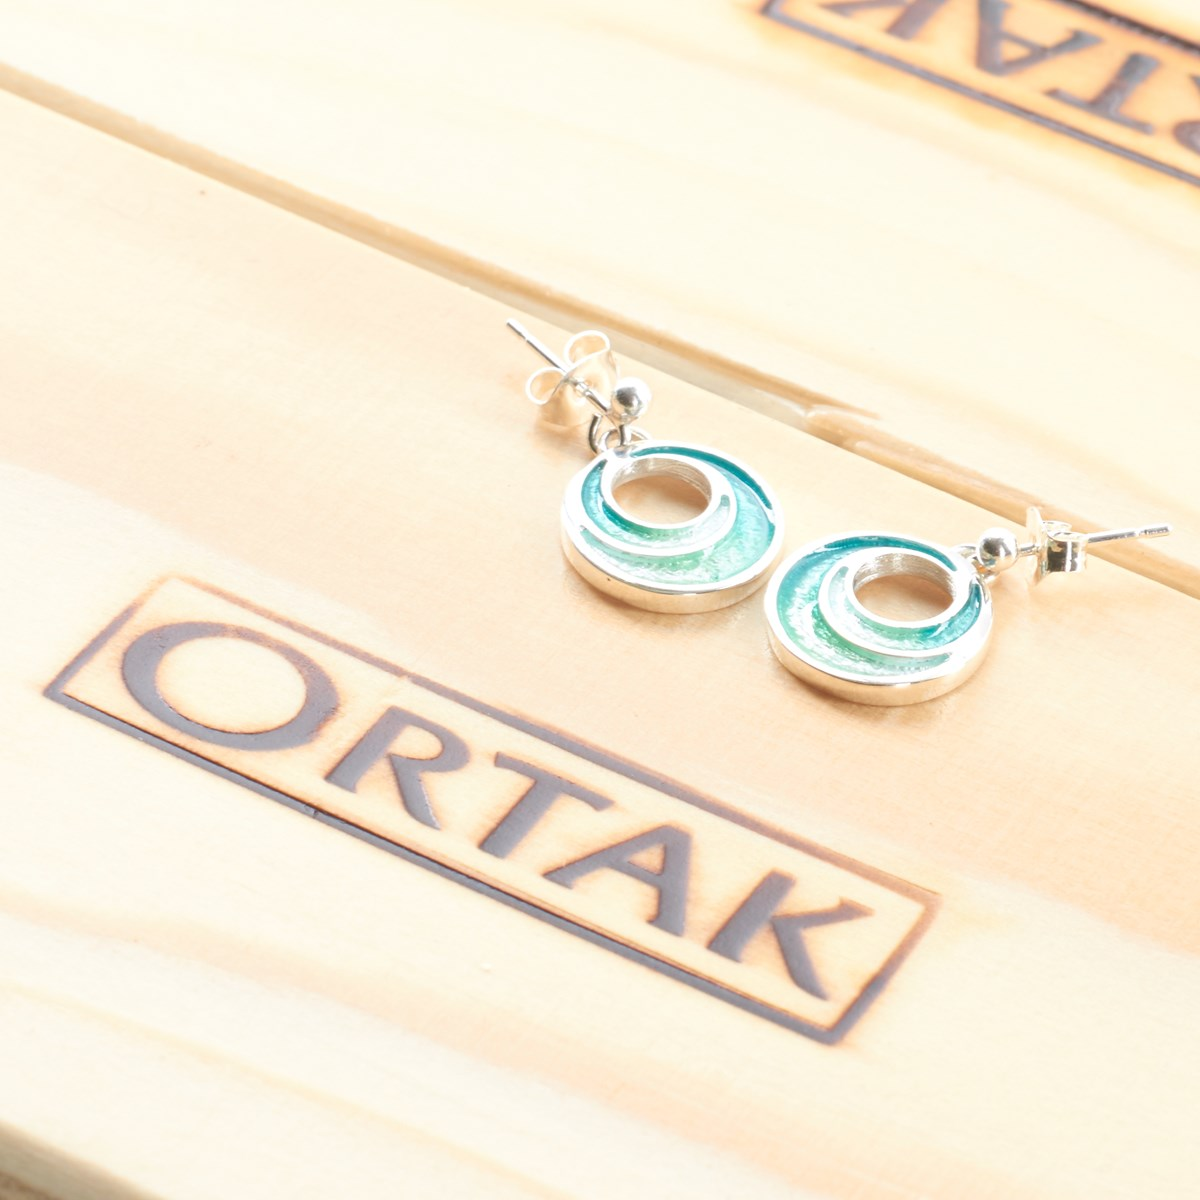 37adc22b6 Sterling Silver New Dawn Earrings, Tundra by Ortak ·  18170066_sterling_silver_earings_tundra_3284_3305 ·  18170066_sterling_silver_earings_tundra_3282_3304